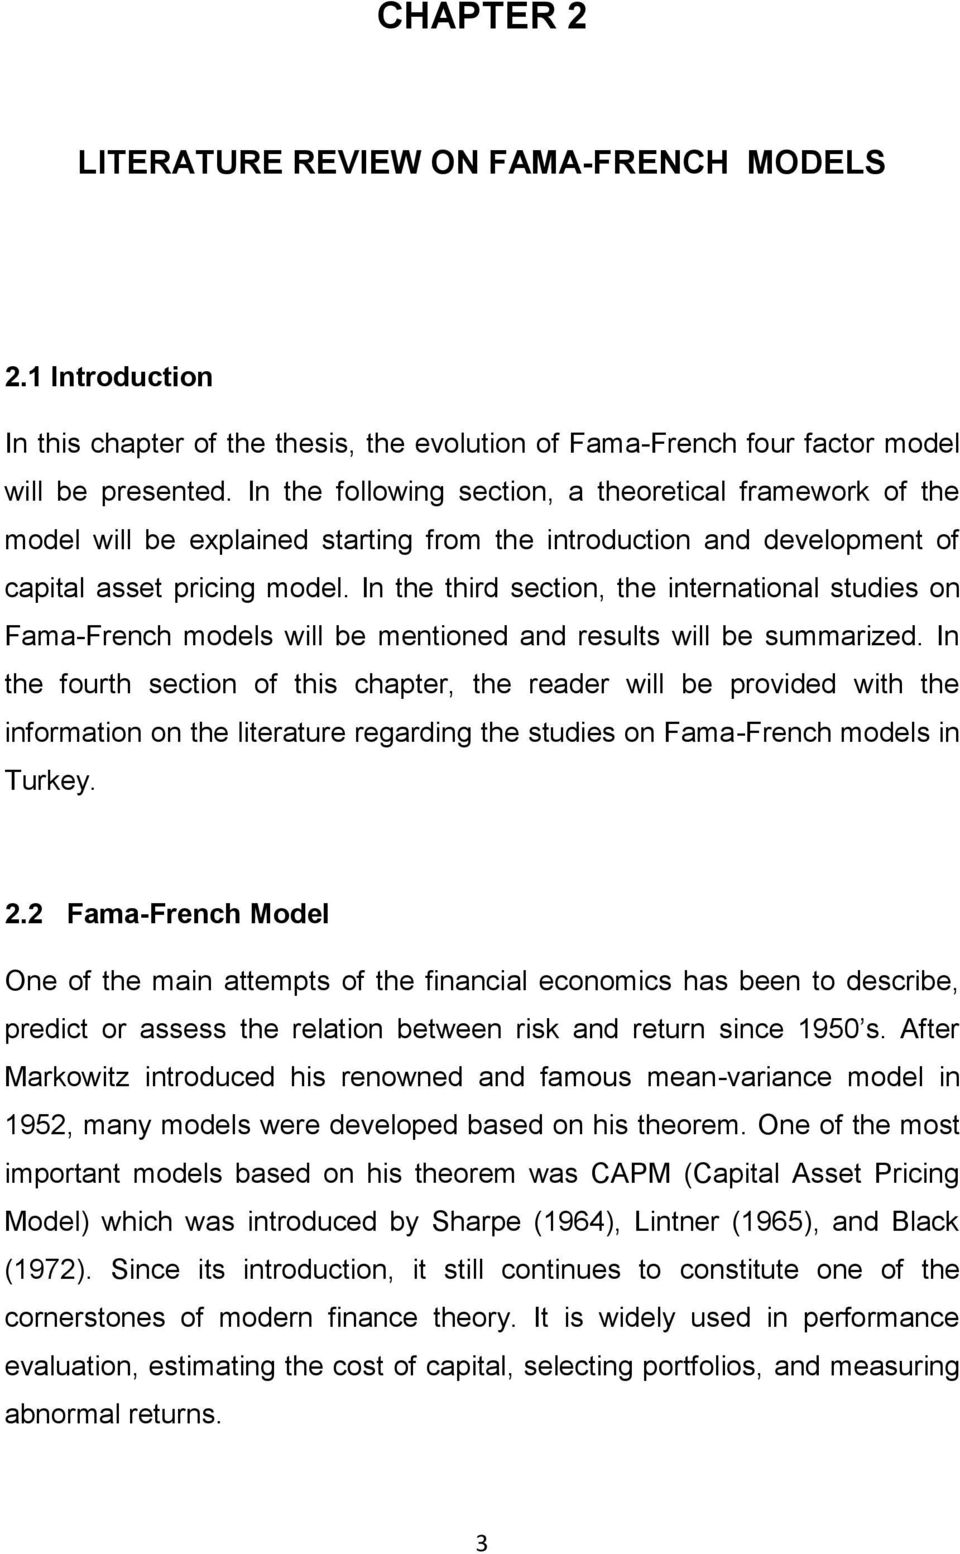 In the third section, the international studies on Fama-French models will be mentioned and results will be summarized.